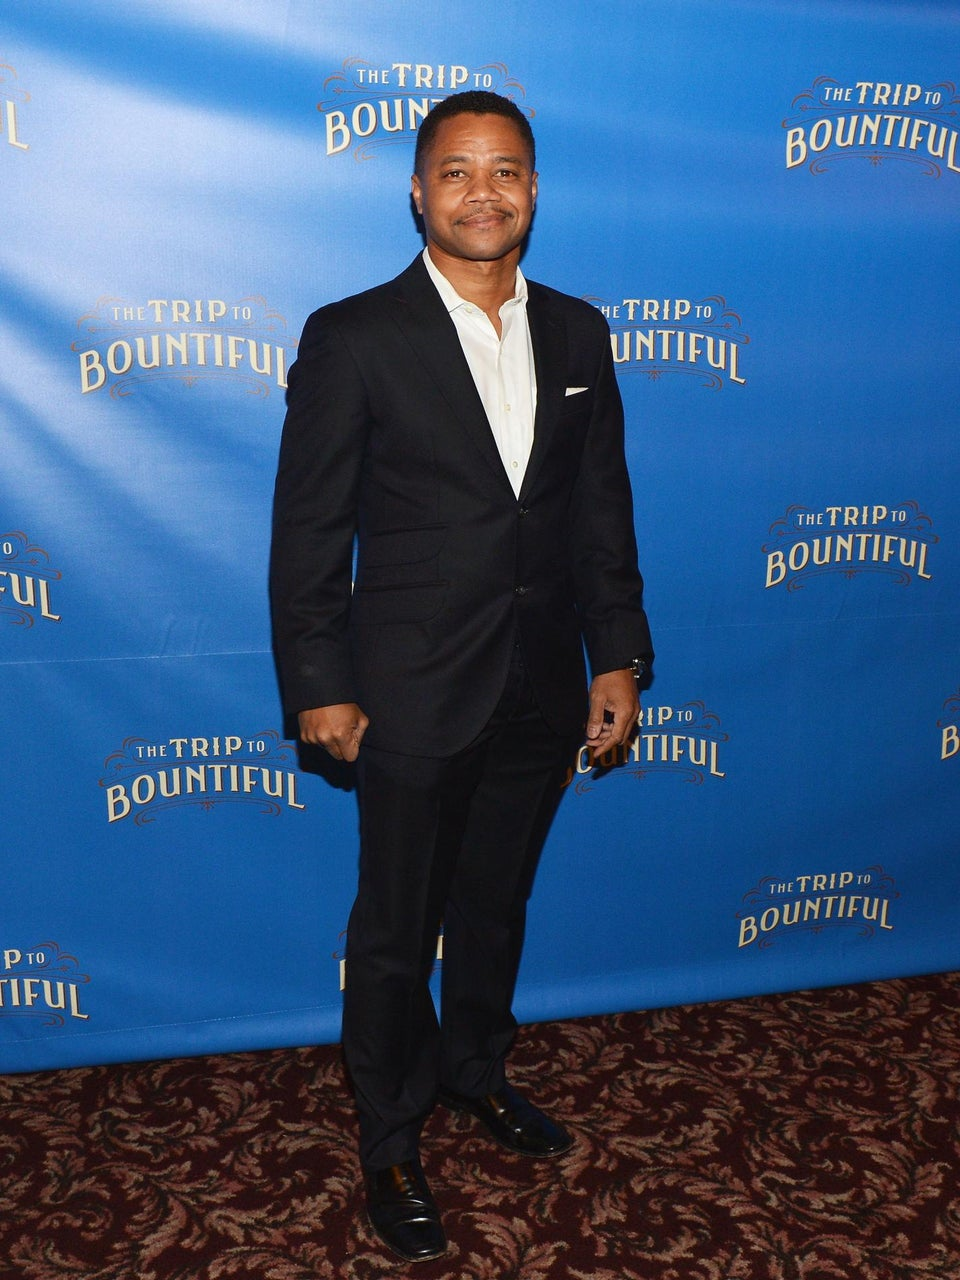 Cuba Gooding Jr. to Leave Broadway's 'Trip to Bountiful'